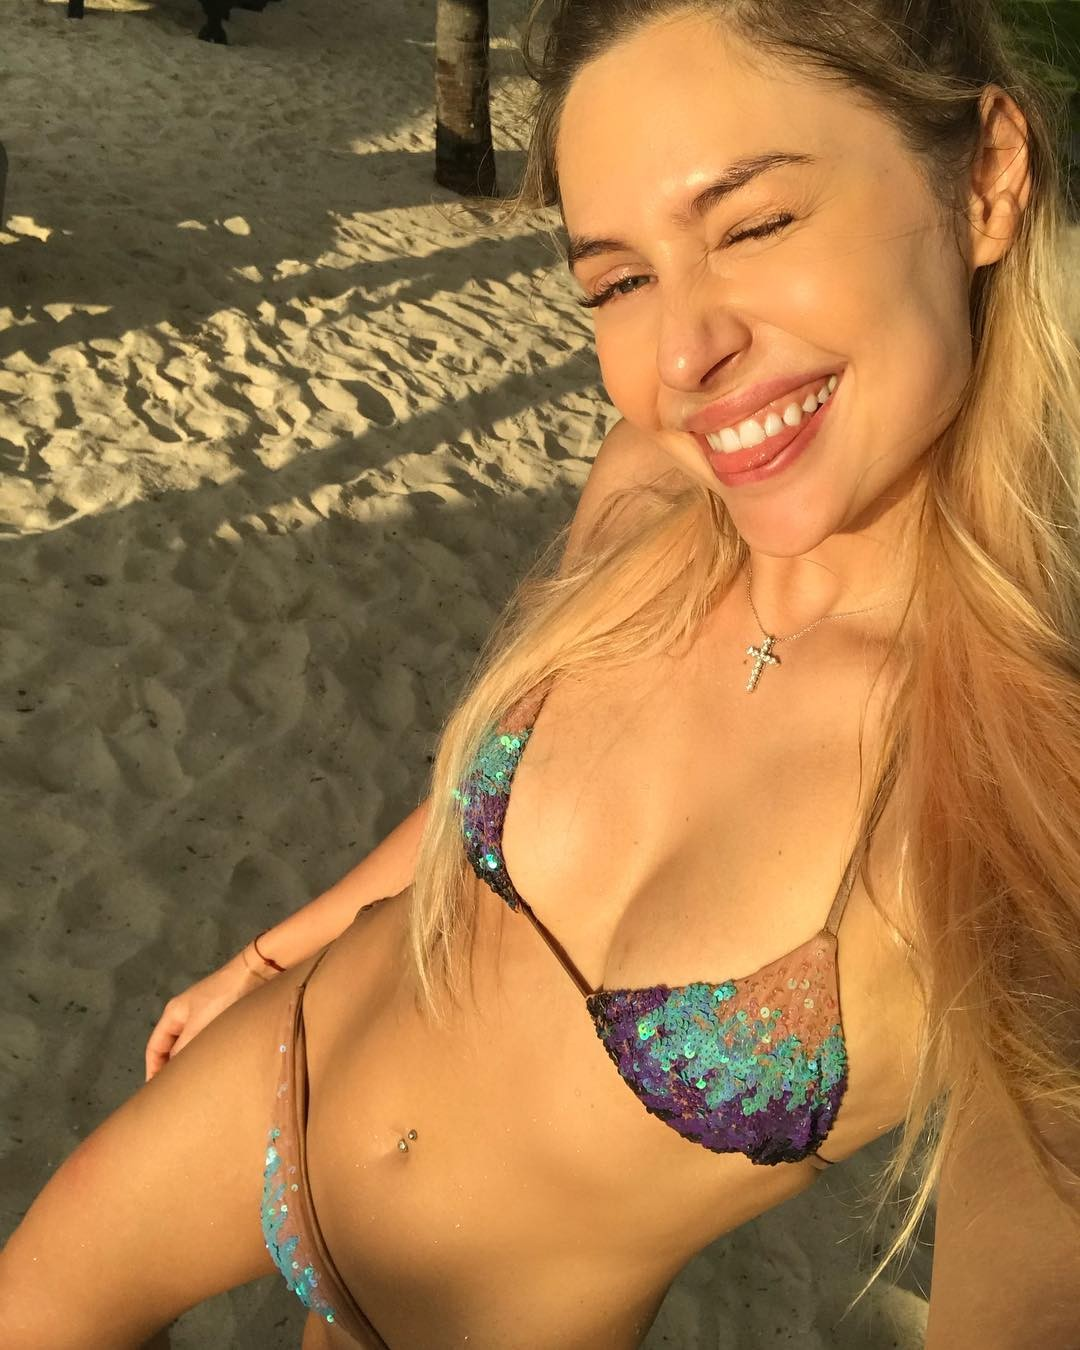 Natalya Rudova Sexy Revealing Photos Leaked